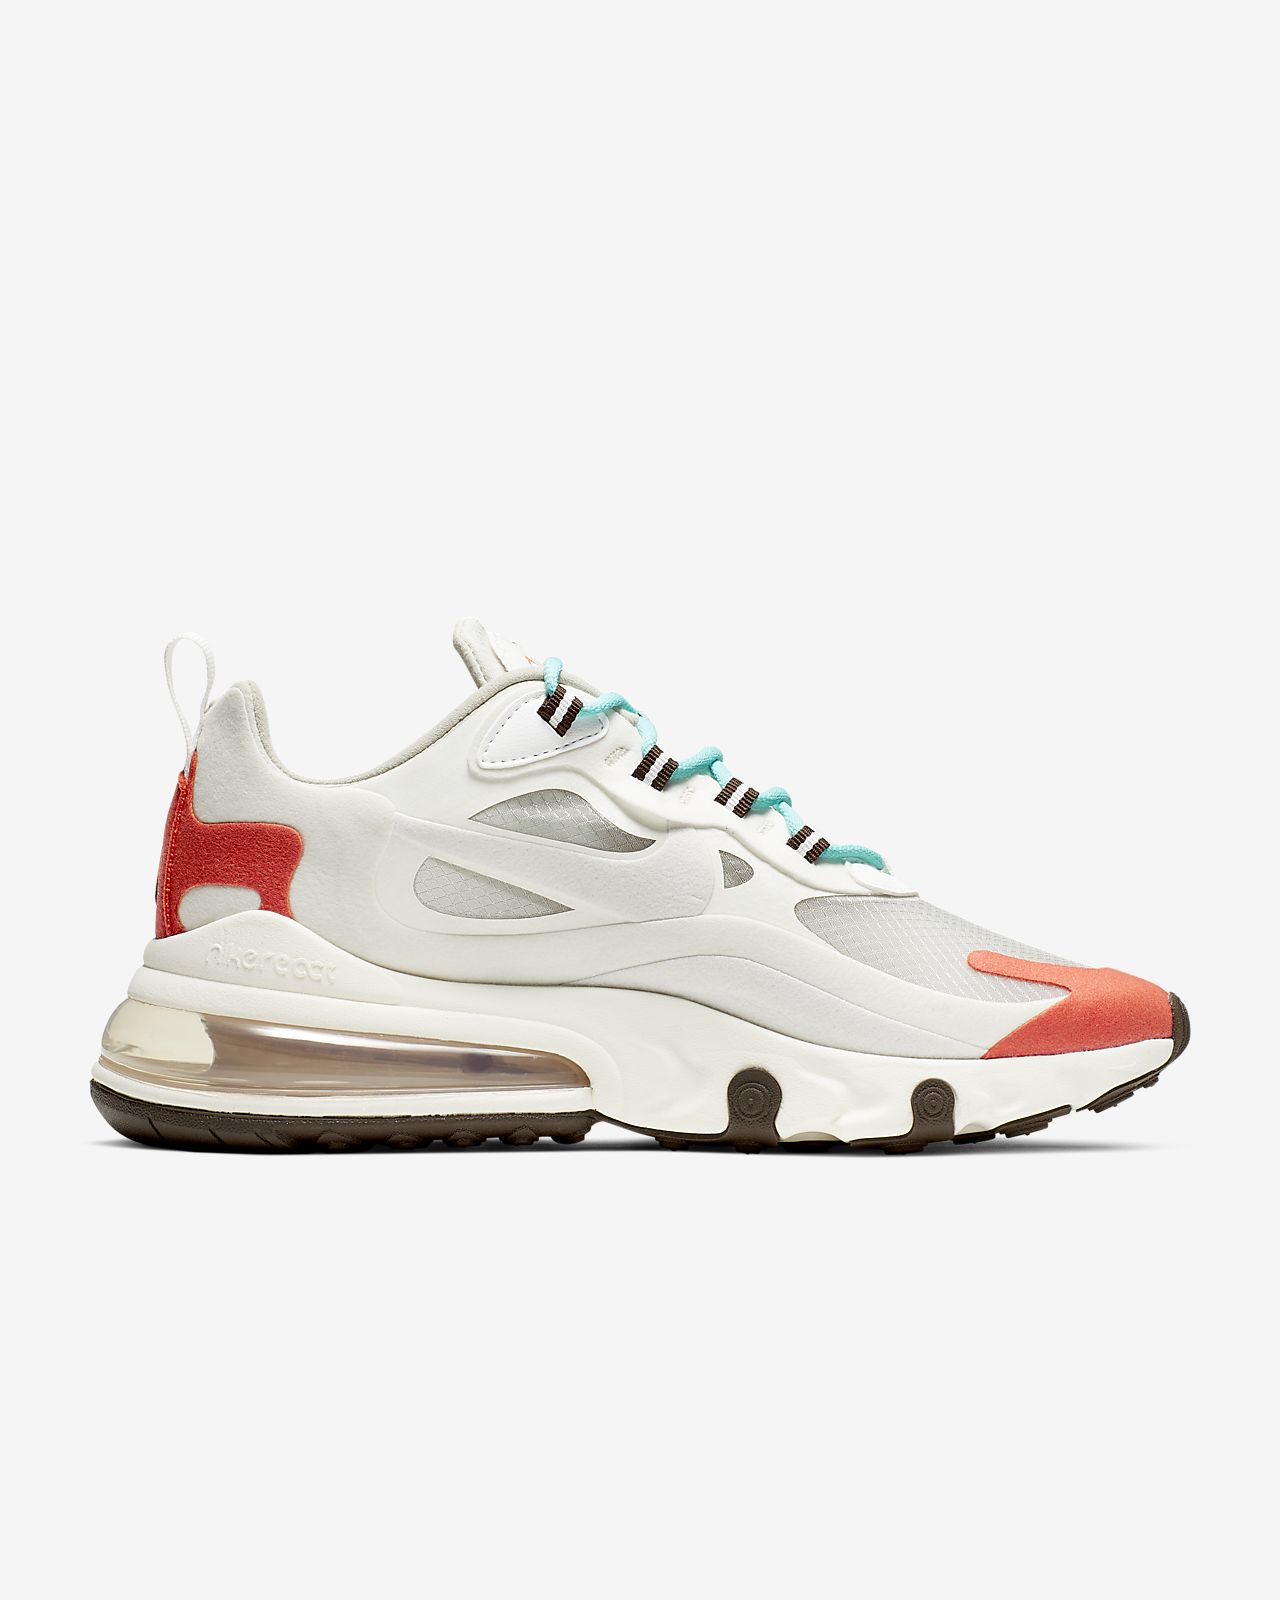 on sale aba04 b8f5d Nike Air Max 270 React (Mid-Century) Women's Shoe